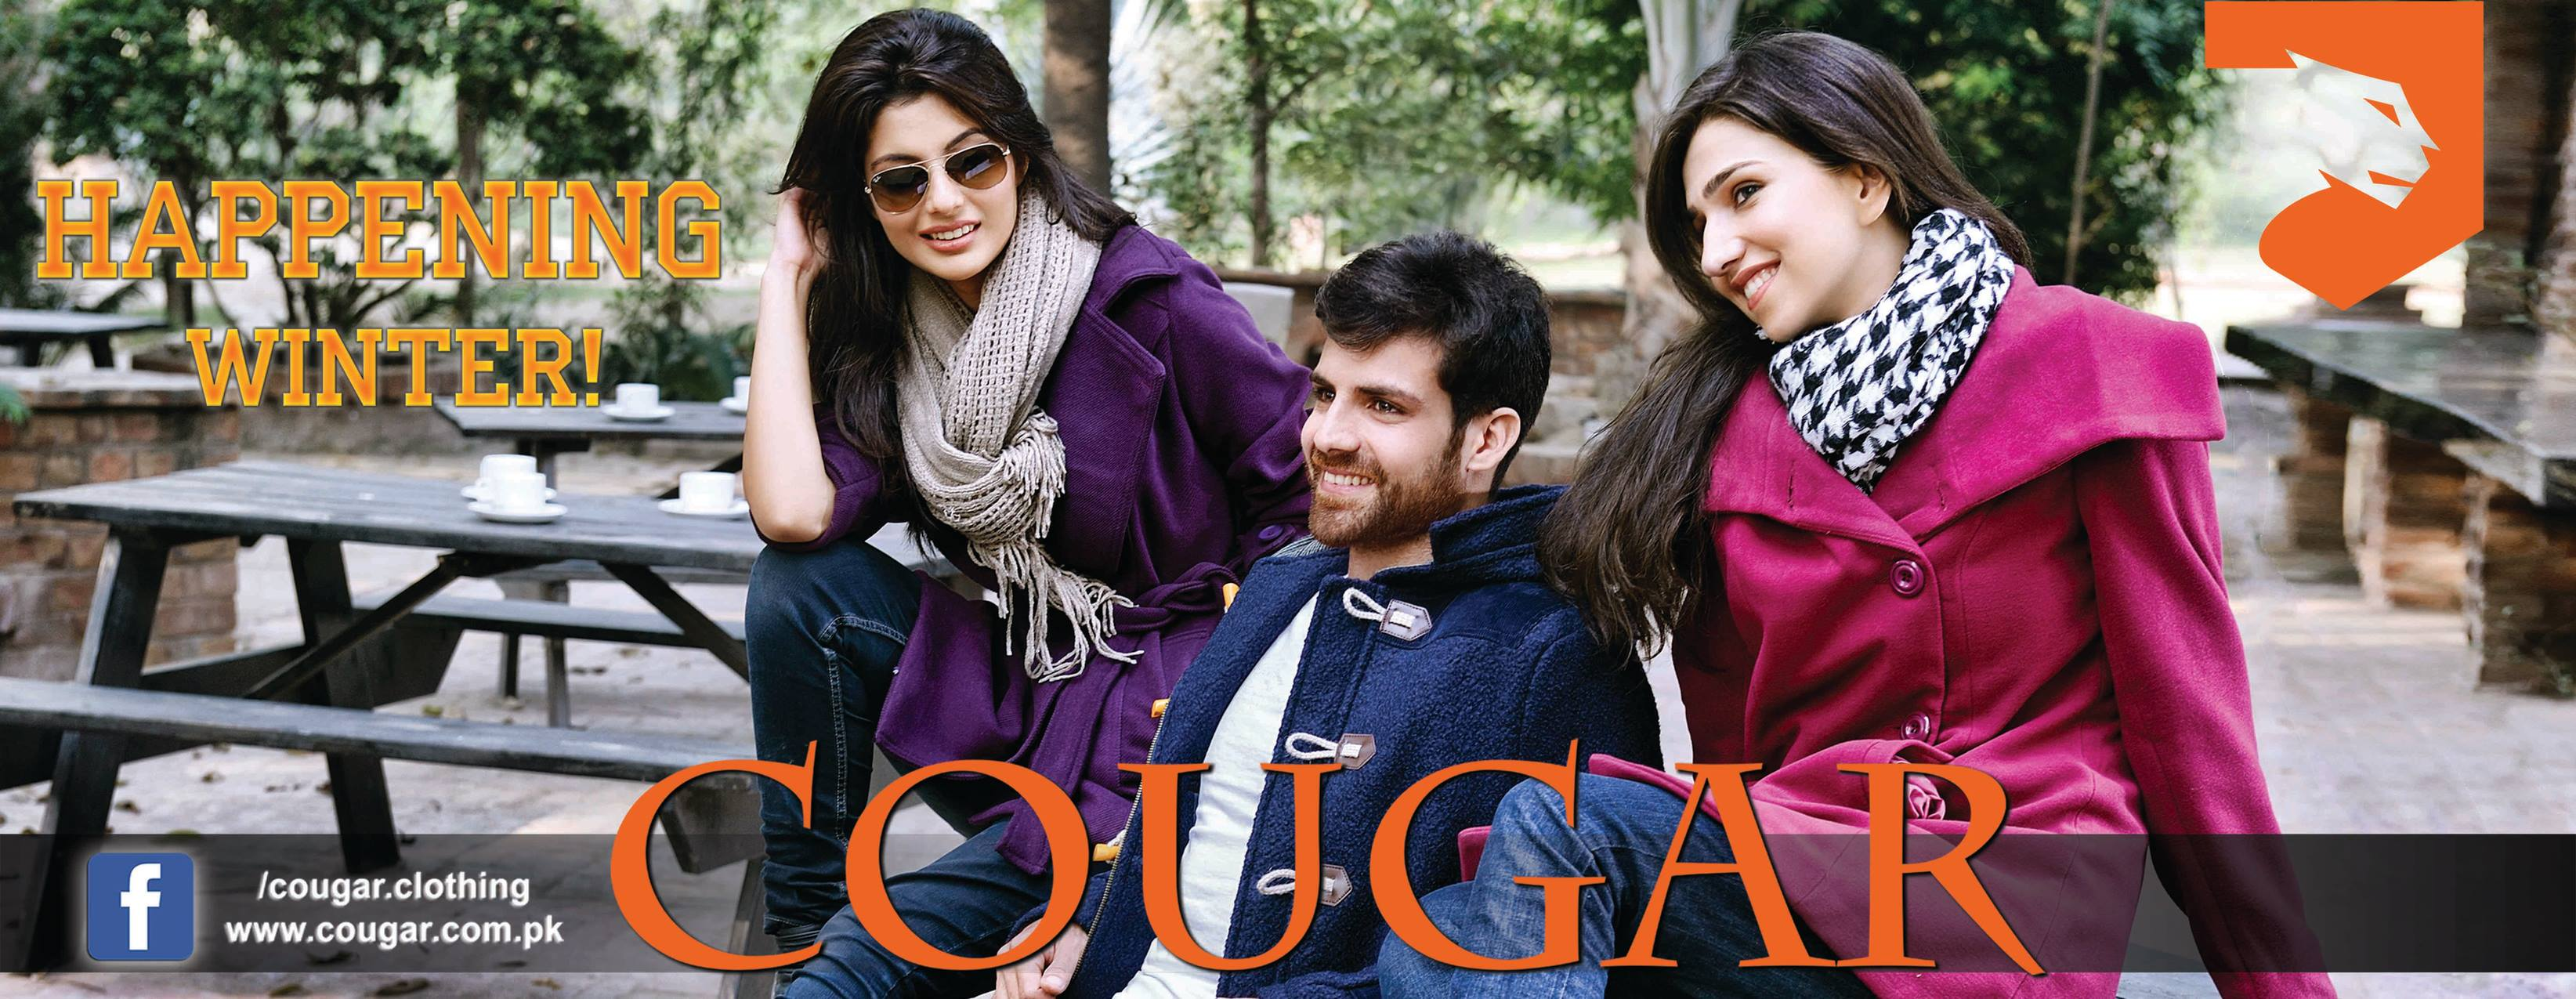 cougar new arrival winter collection